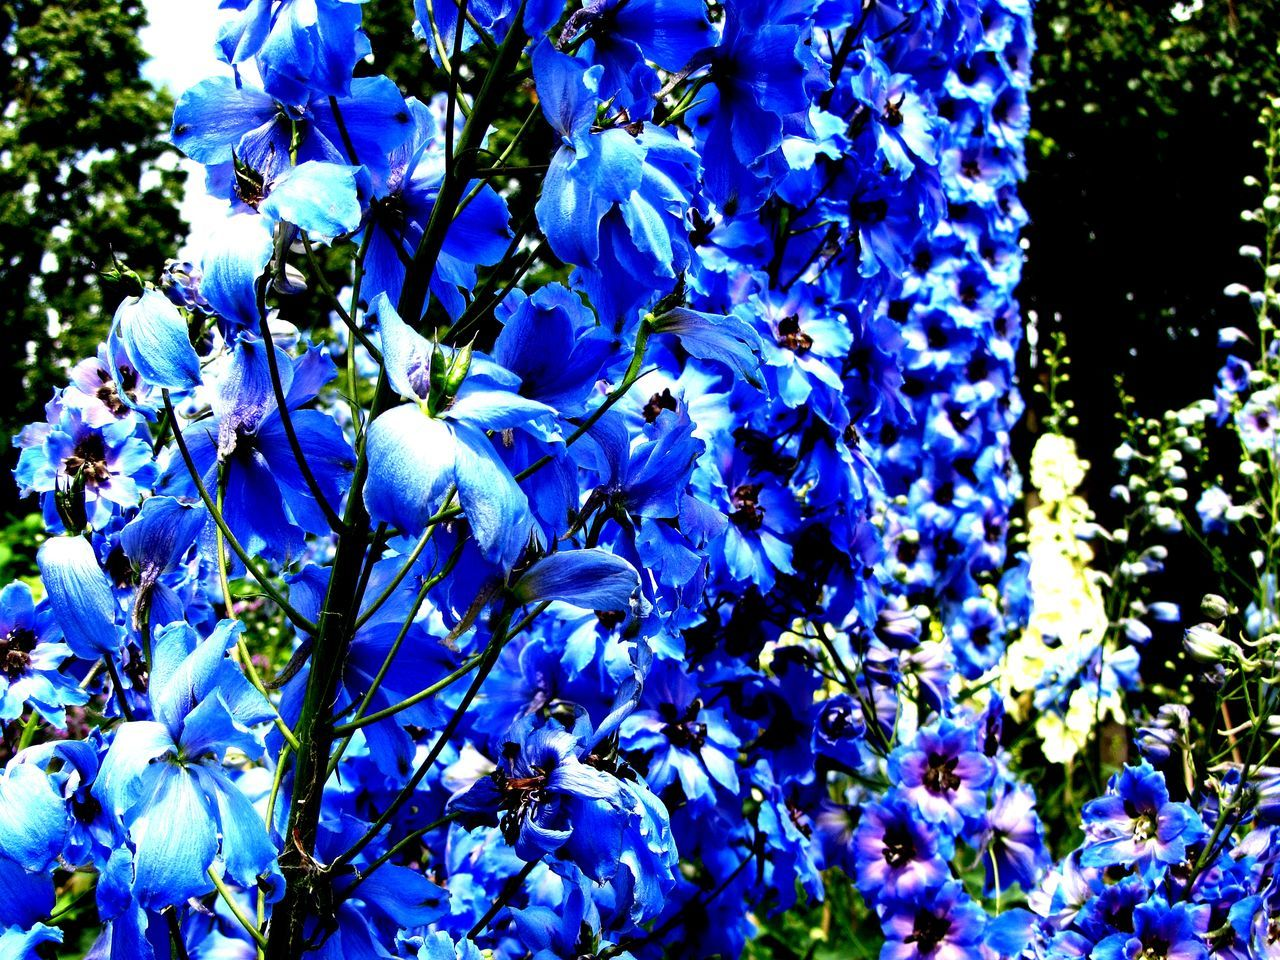 Blue Flowers Blue Flower Nature Beauty In Nature Growth No People Day Outdoors Regents Park London EyeEmNewHere